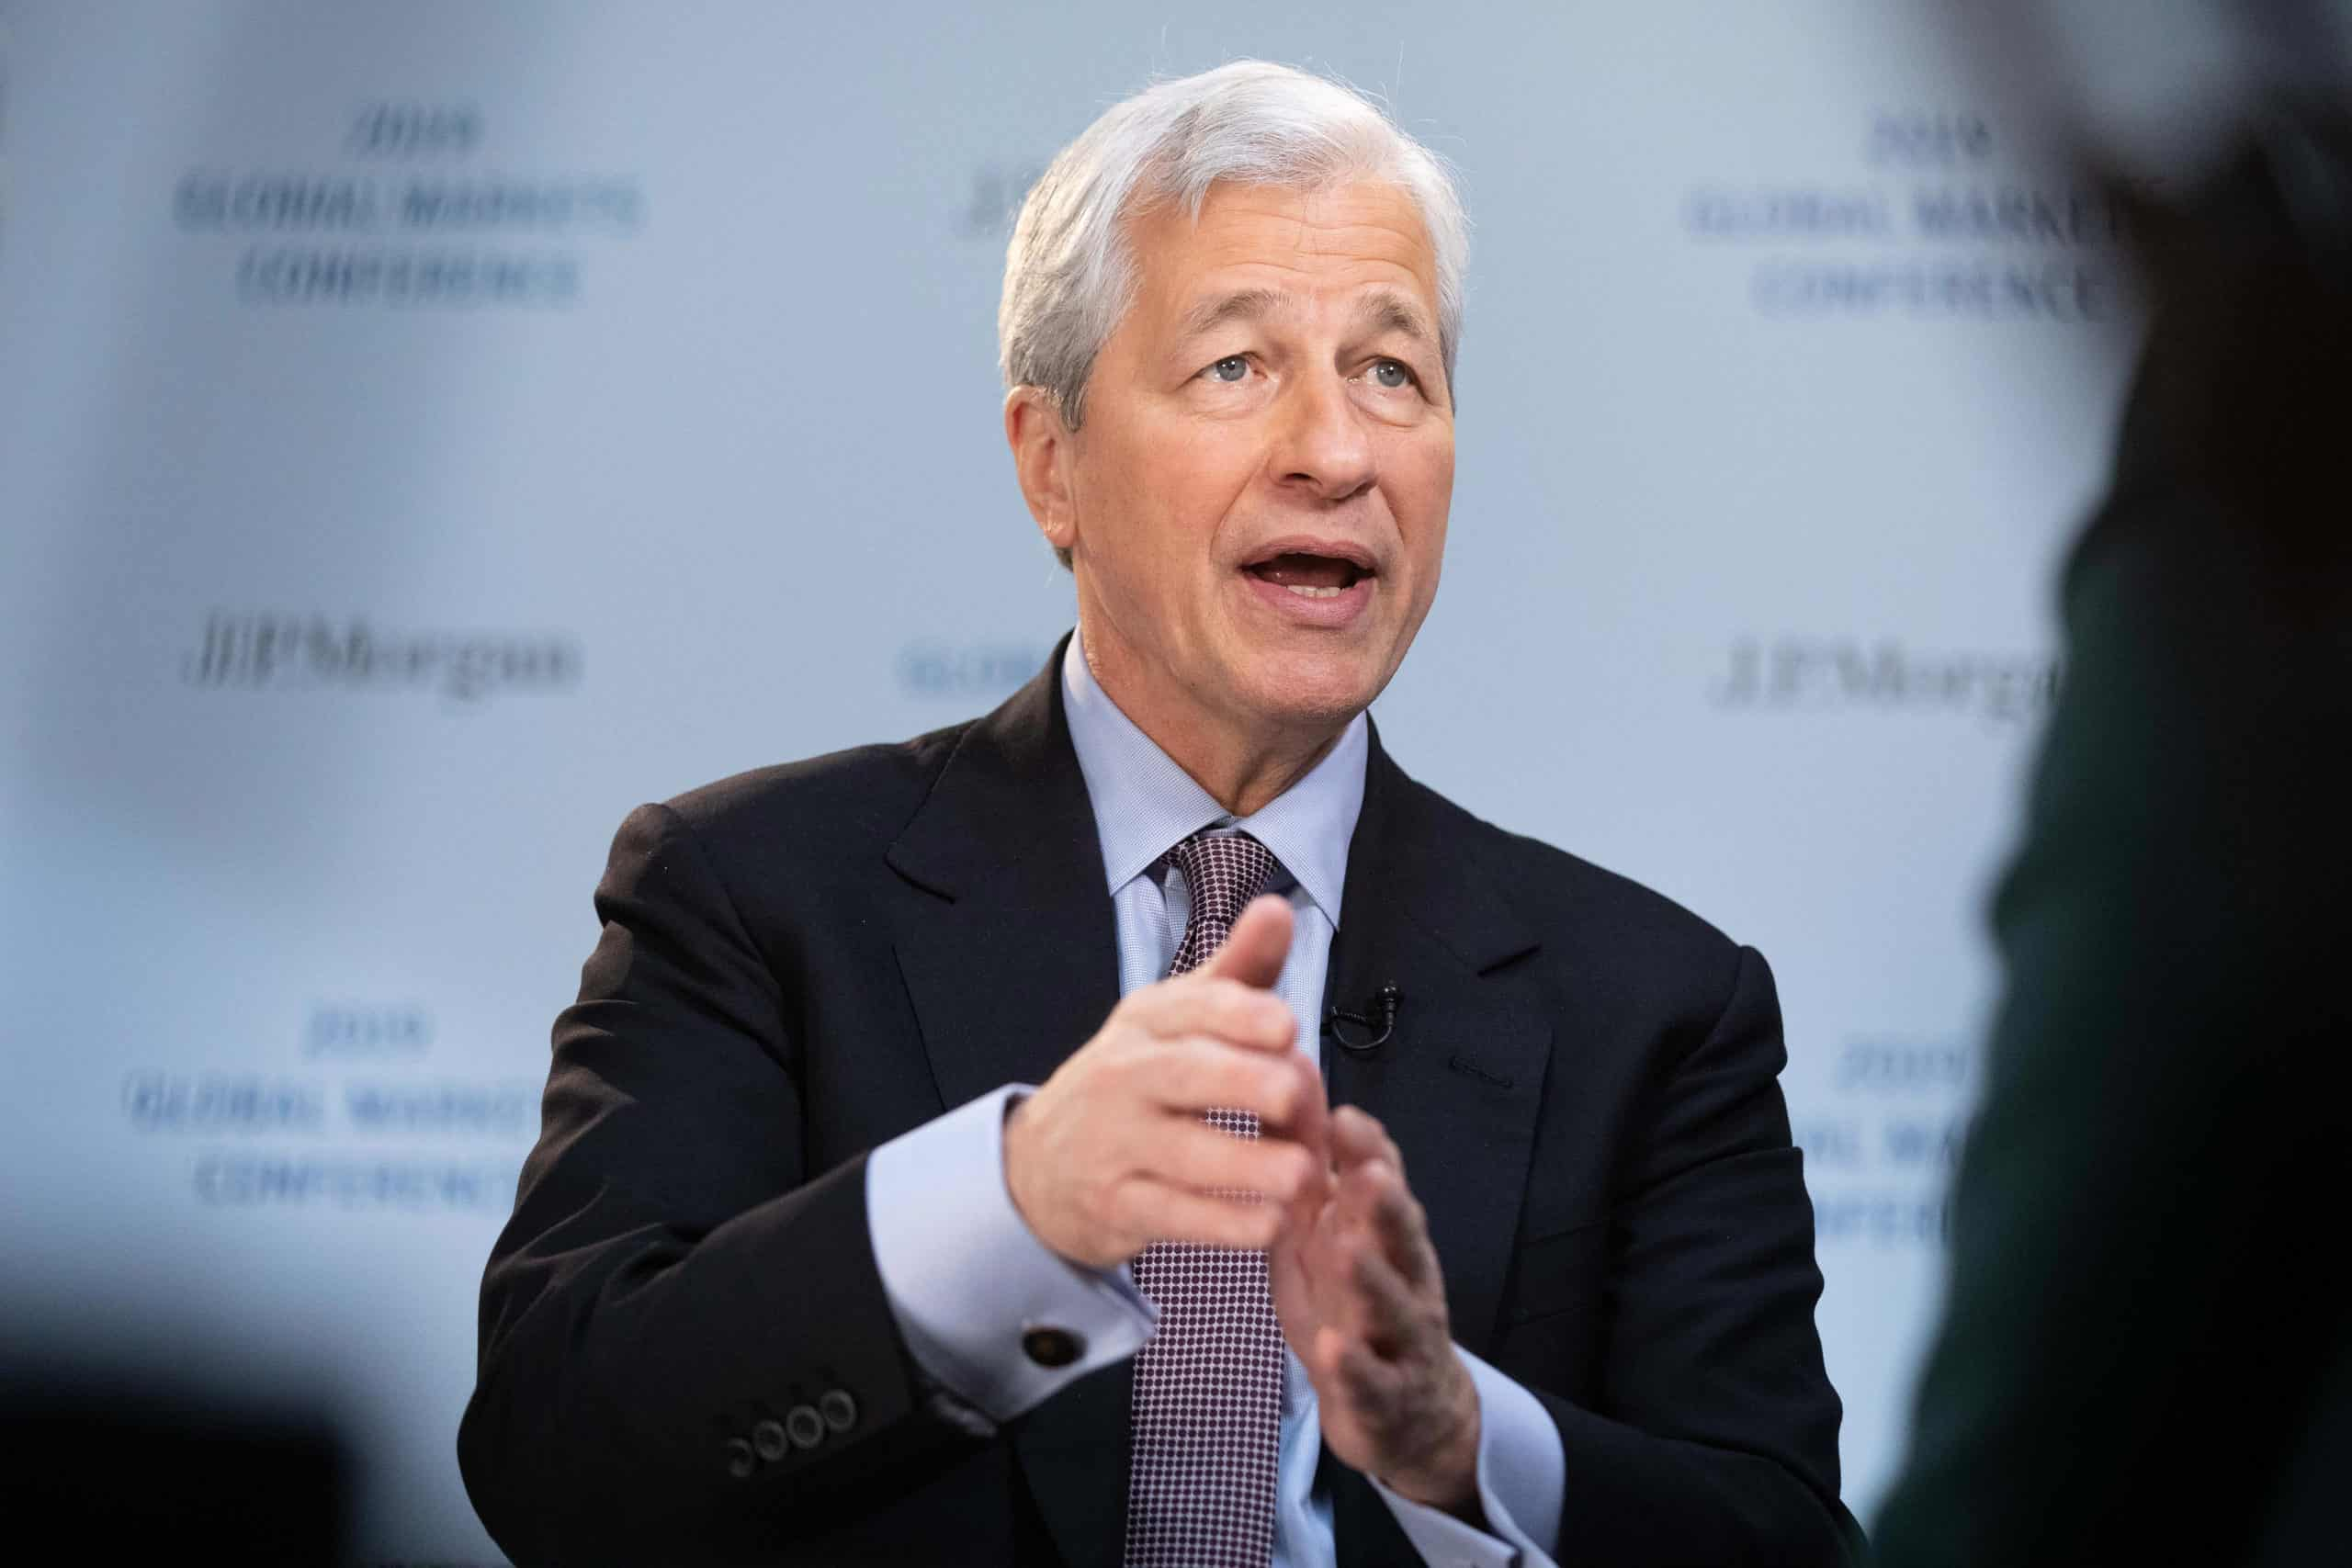 Bitcoin Is Not Jamie Dimon's Cup Of Tea But Is There More To The Story?